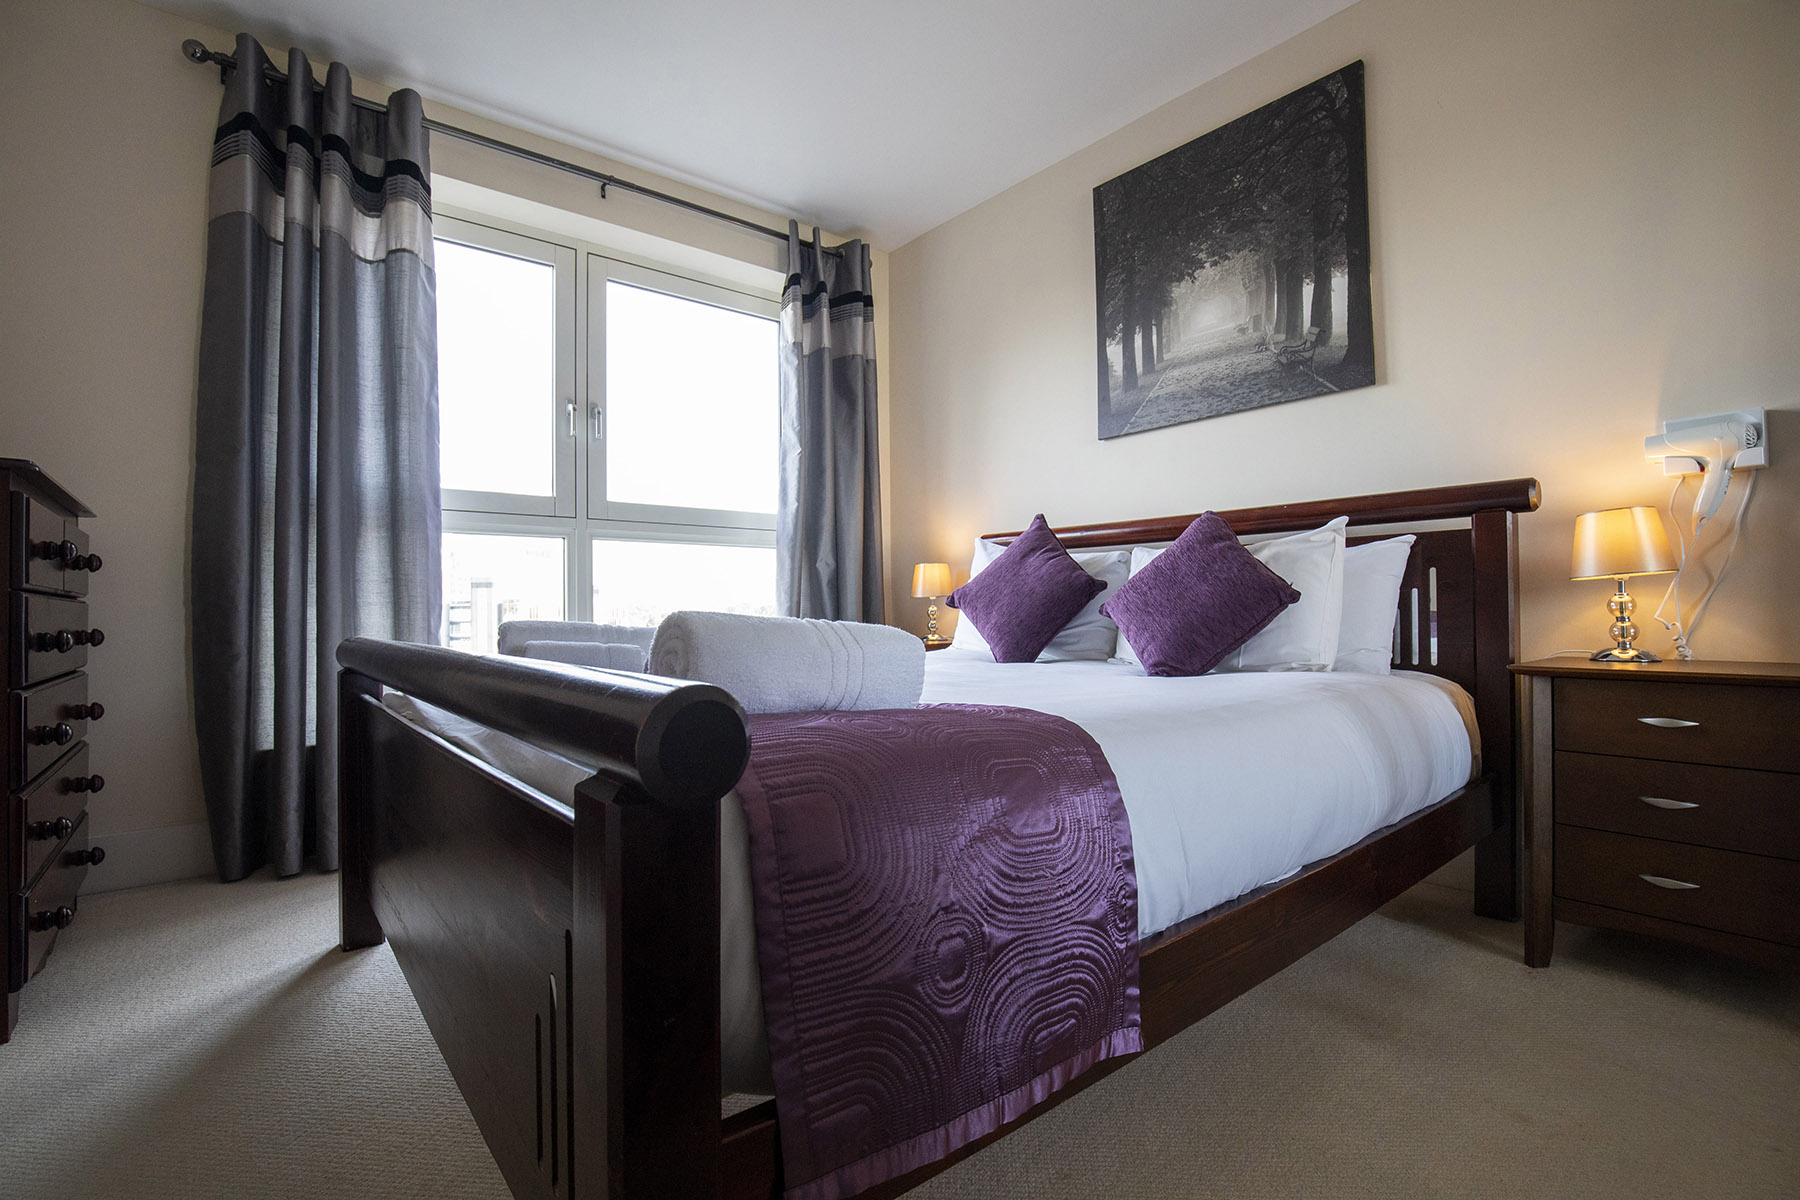 Bedroom at Flexi-Let Skyline Plaza Apartments, Centre, Basingstoke - Citybase Apartments